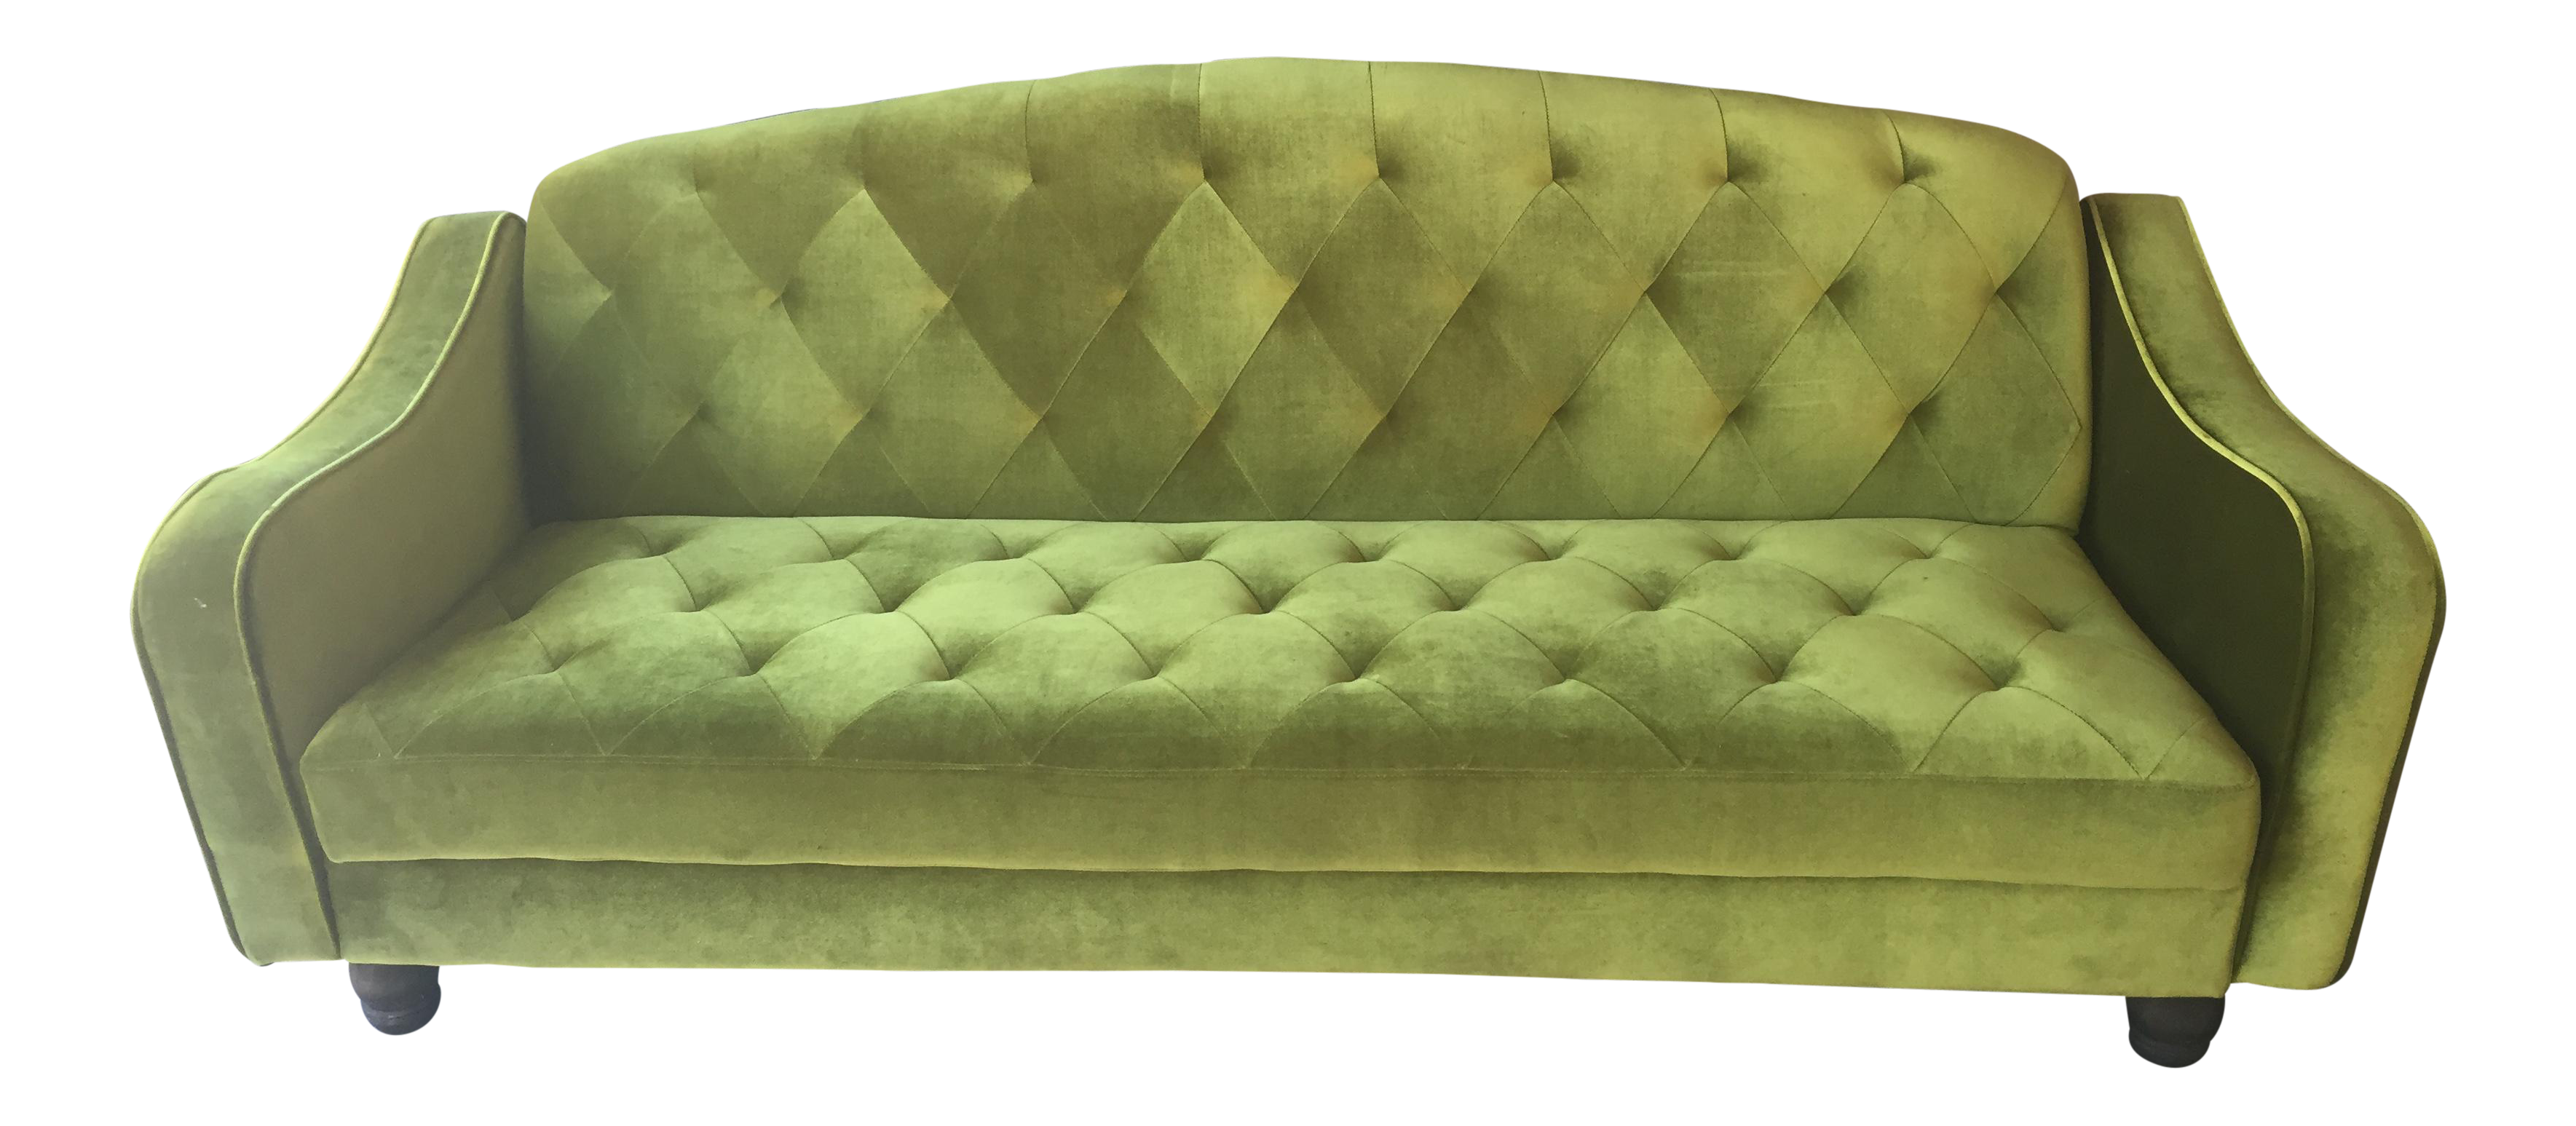 Apartment Anthropologie Armoire - anthropologie-green-velvet-tufted-convertible-sofa-2737_Most Inspiring Apartment Anthropologie Armoire - anthropologie-green-velvet-tufted-convertible-sofa-2737  2018_527860.net/image/product/master/044ae837-bc0c-4cd4-b322-094844b05353/anthropologie-green-velvet-tufted-convertible-sofa-2737